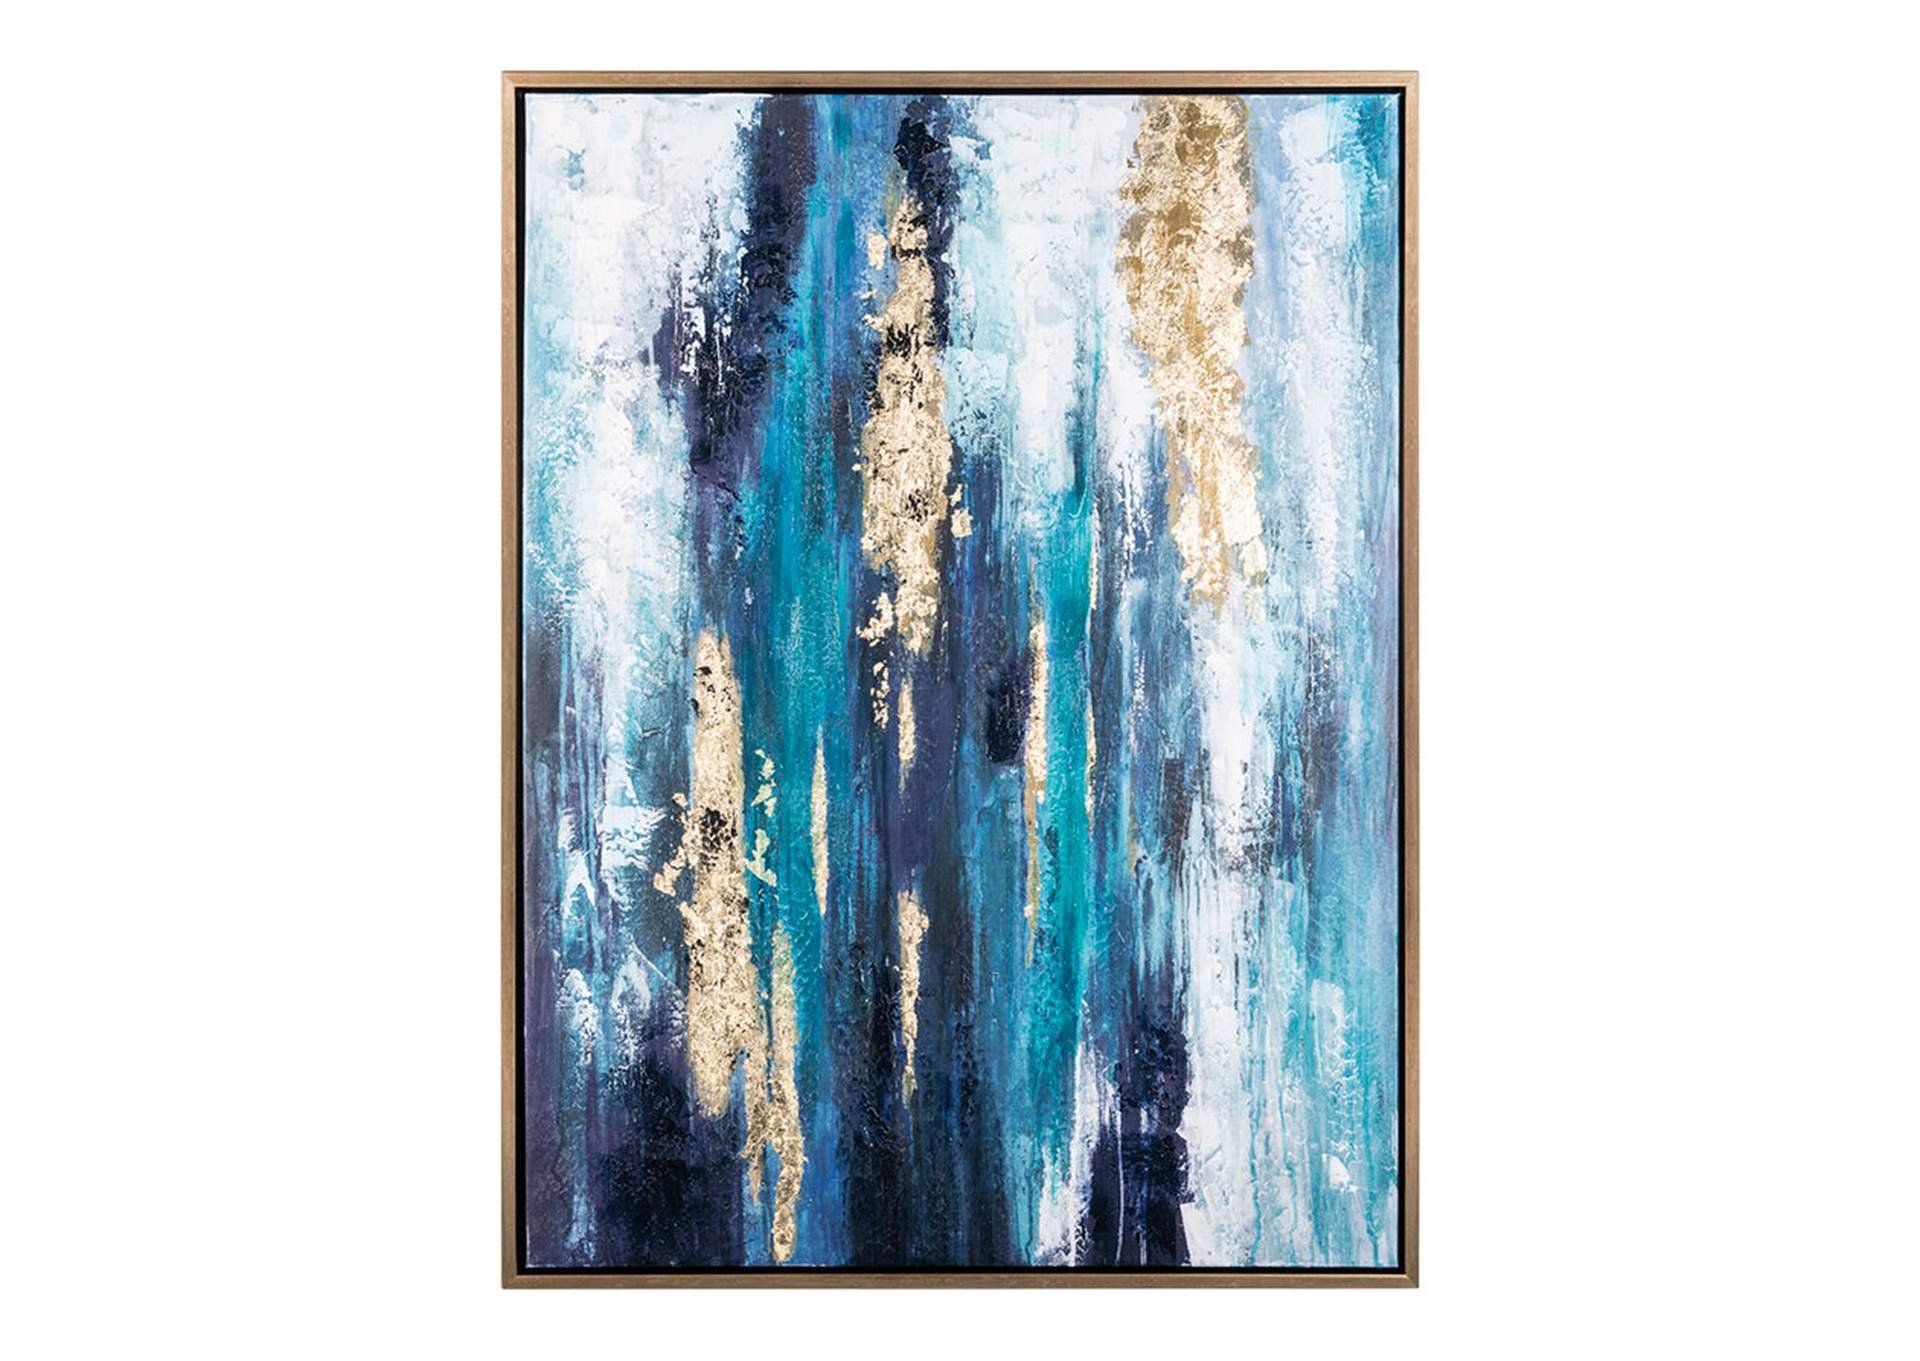 Dinorah Teal Blue Wall Art,Direct To Consumer Express